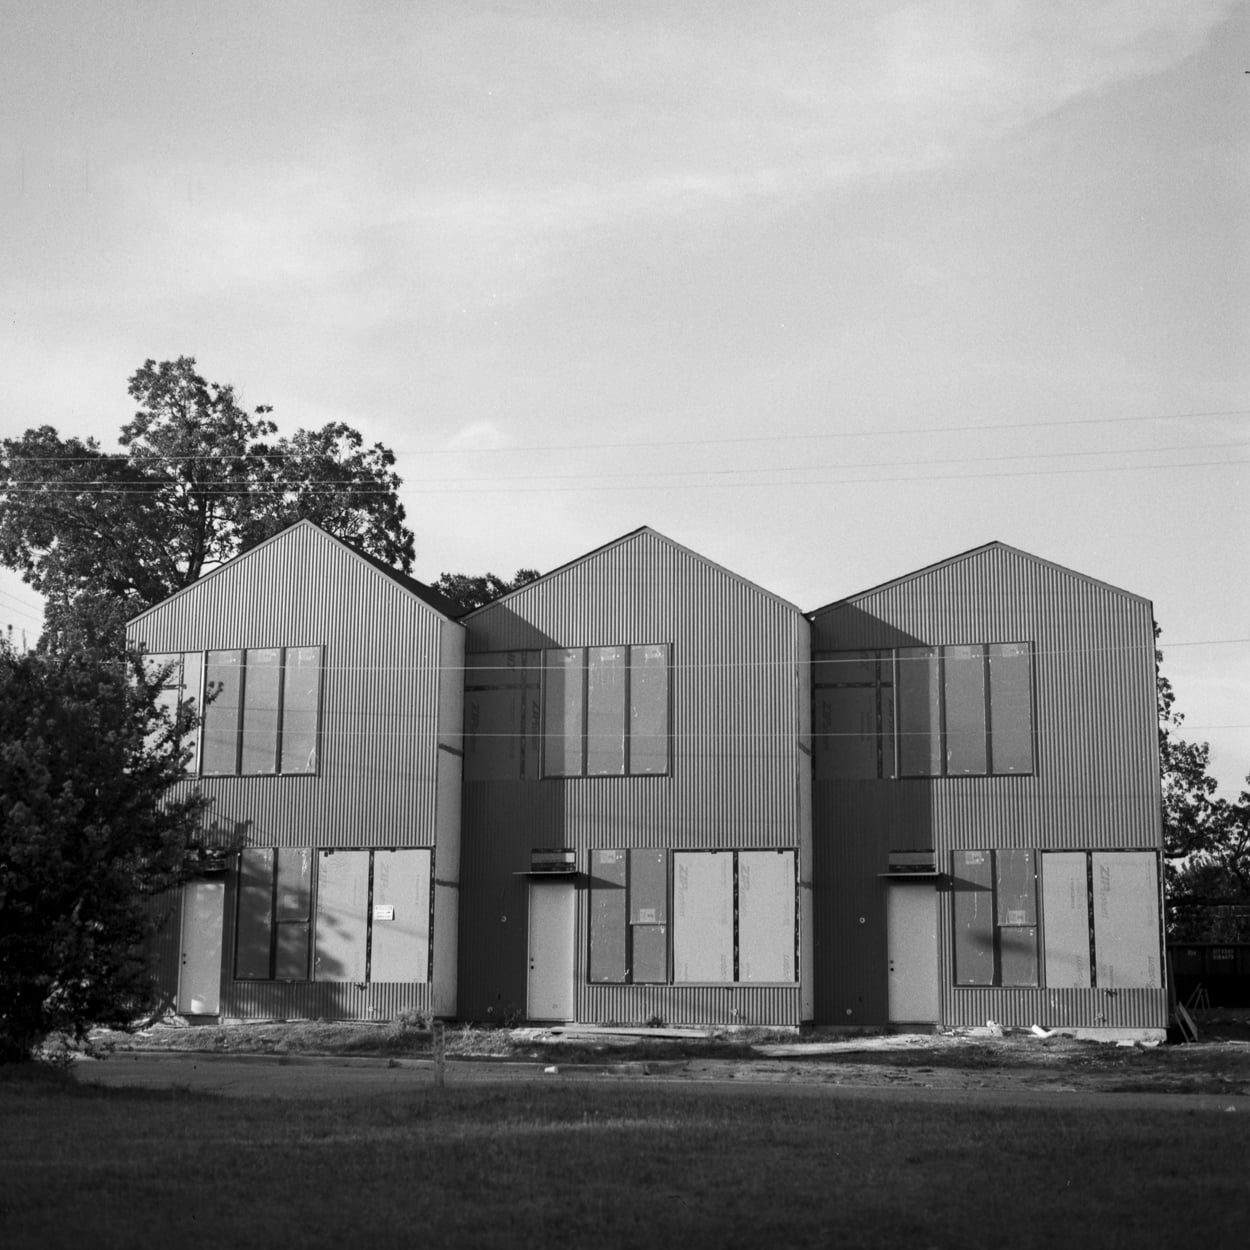 Three new townhouses that replaced an old house